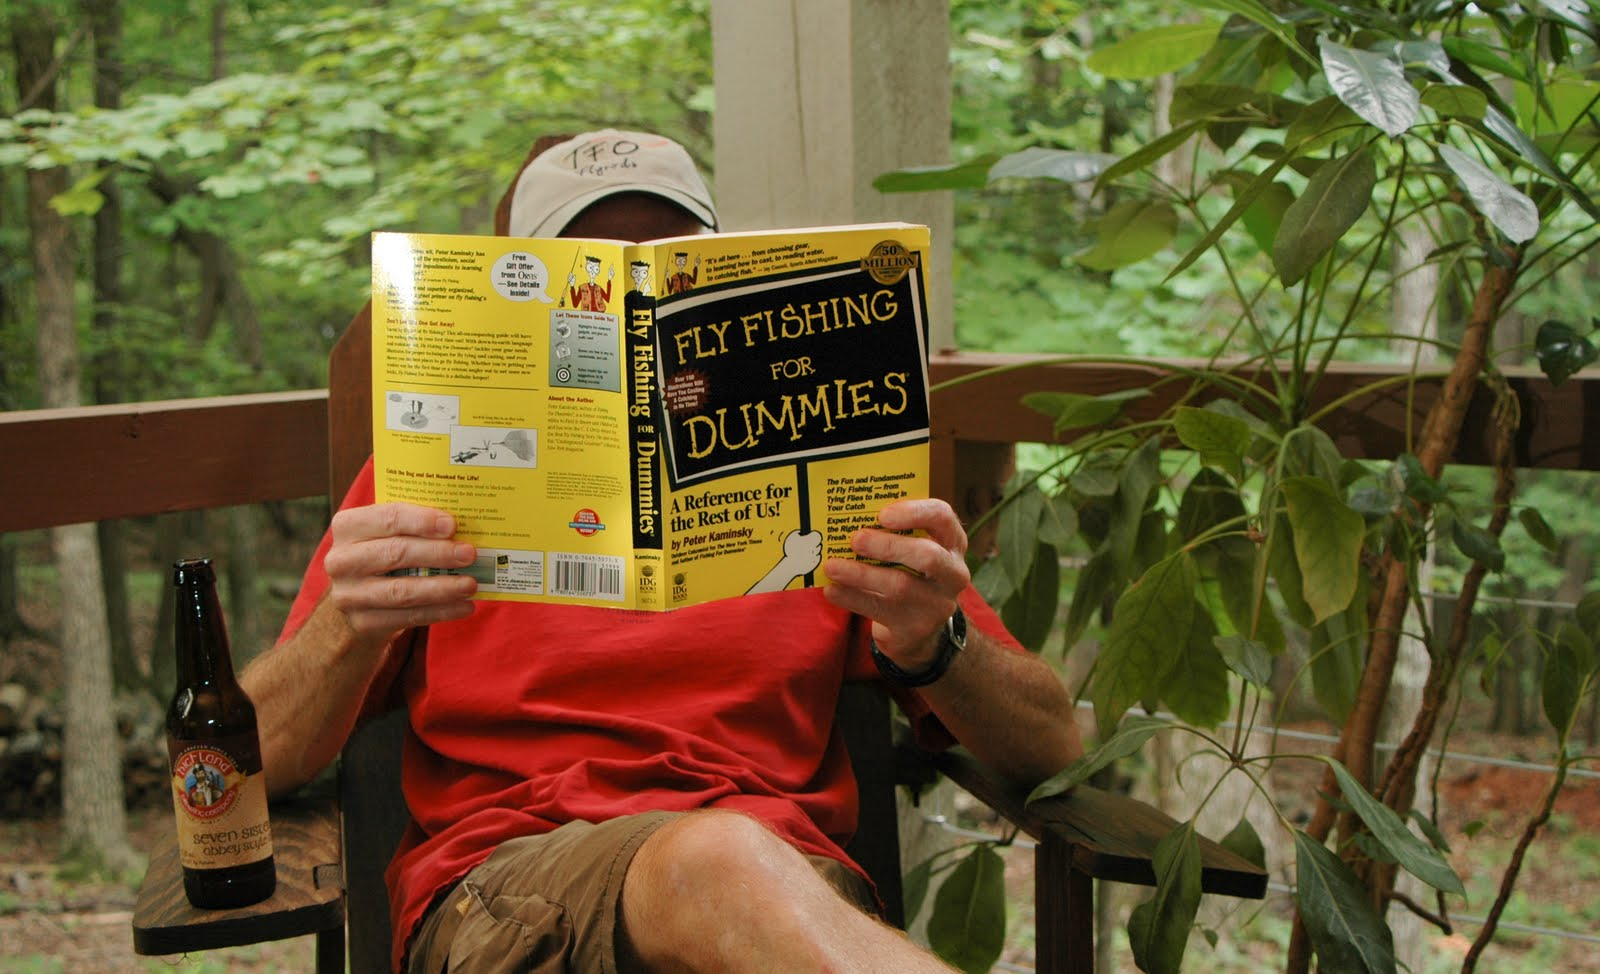 fishing fishing for dummies ForFly Fishing For Dummies